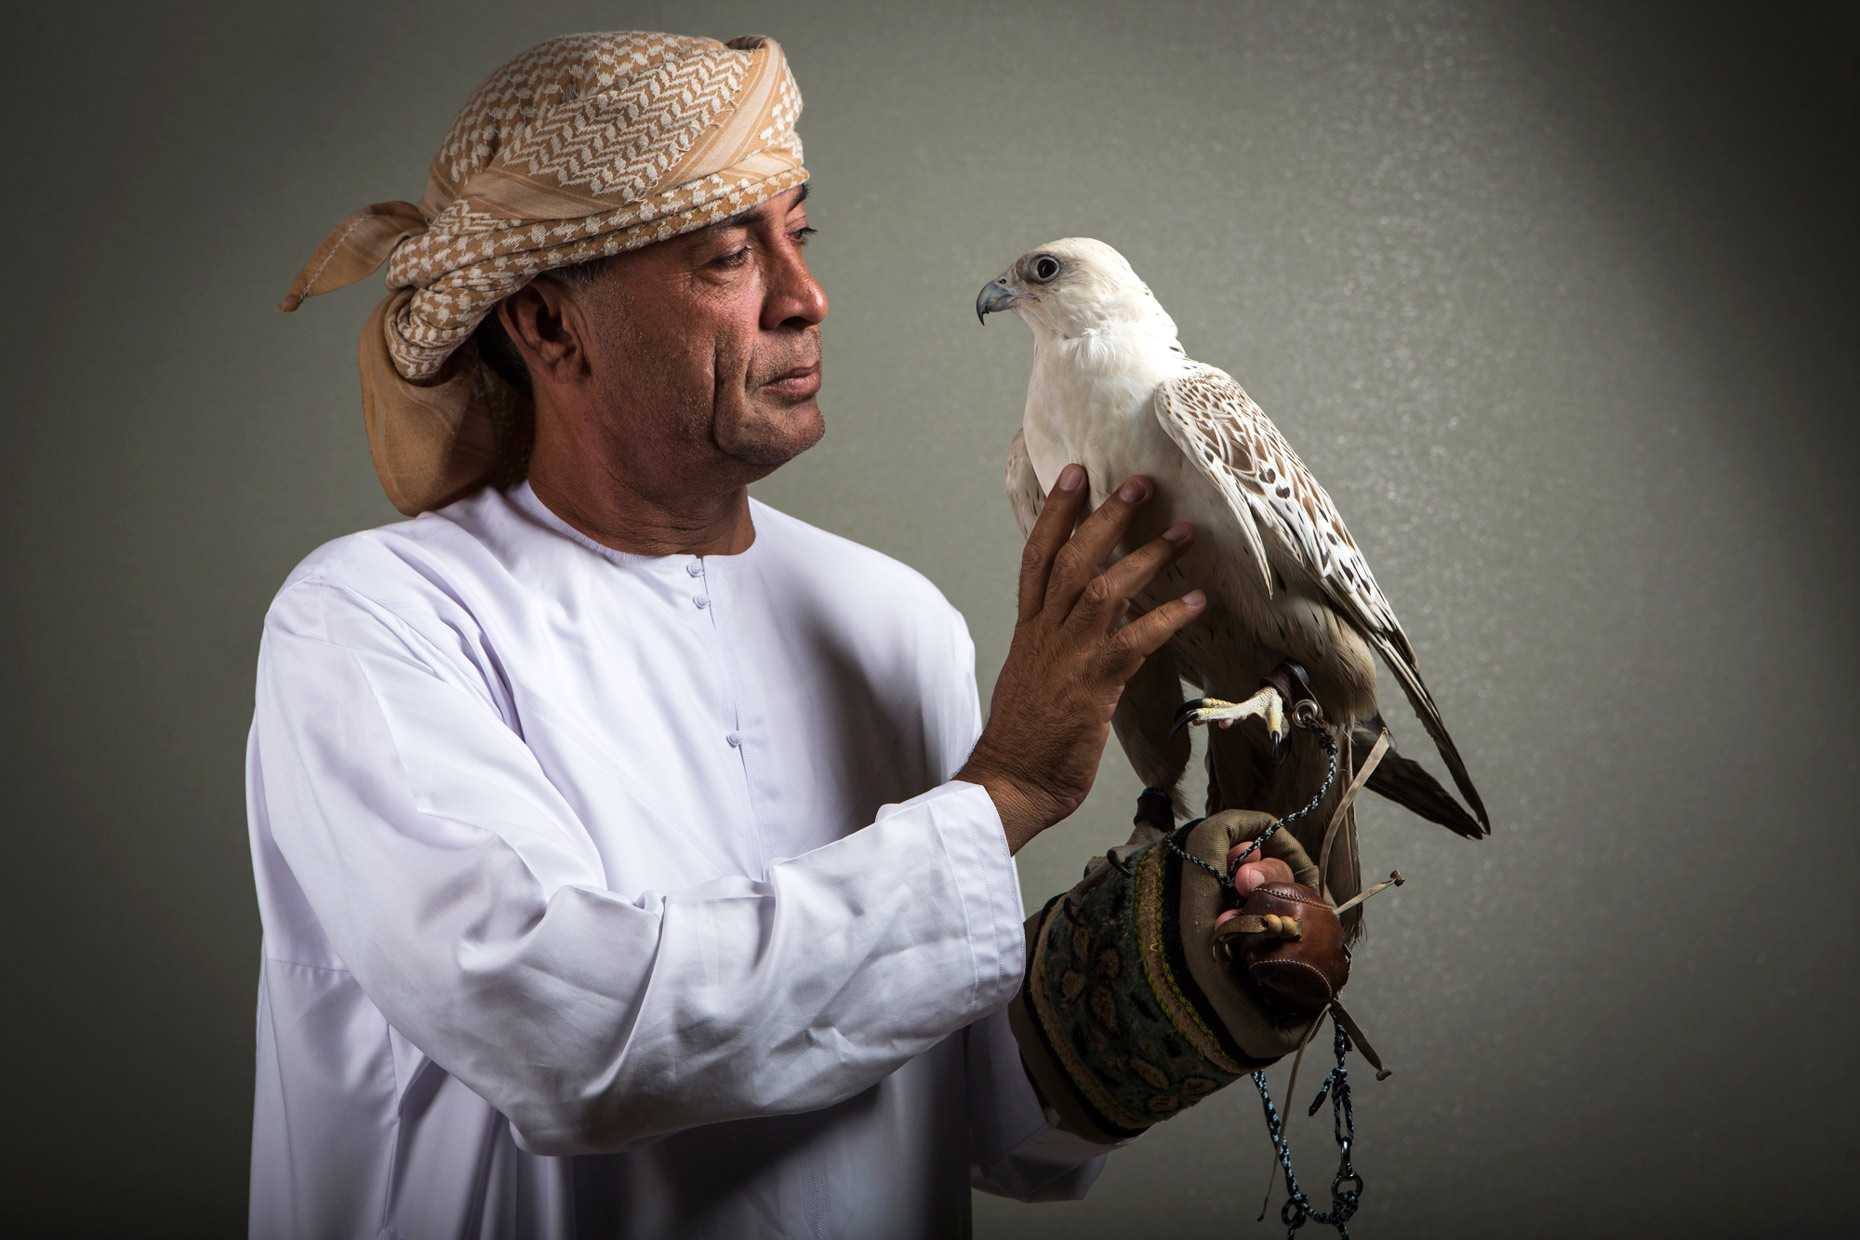 Wouter Kingma Falcons of Arabia 01